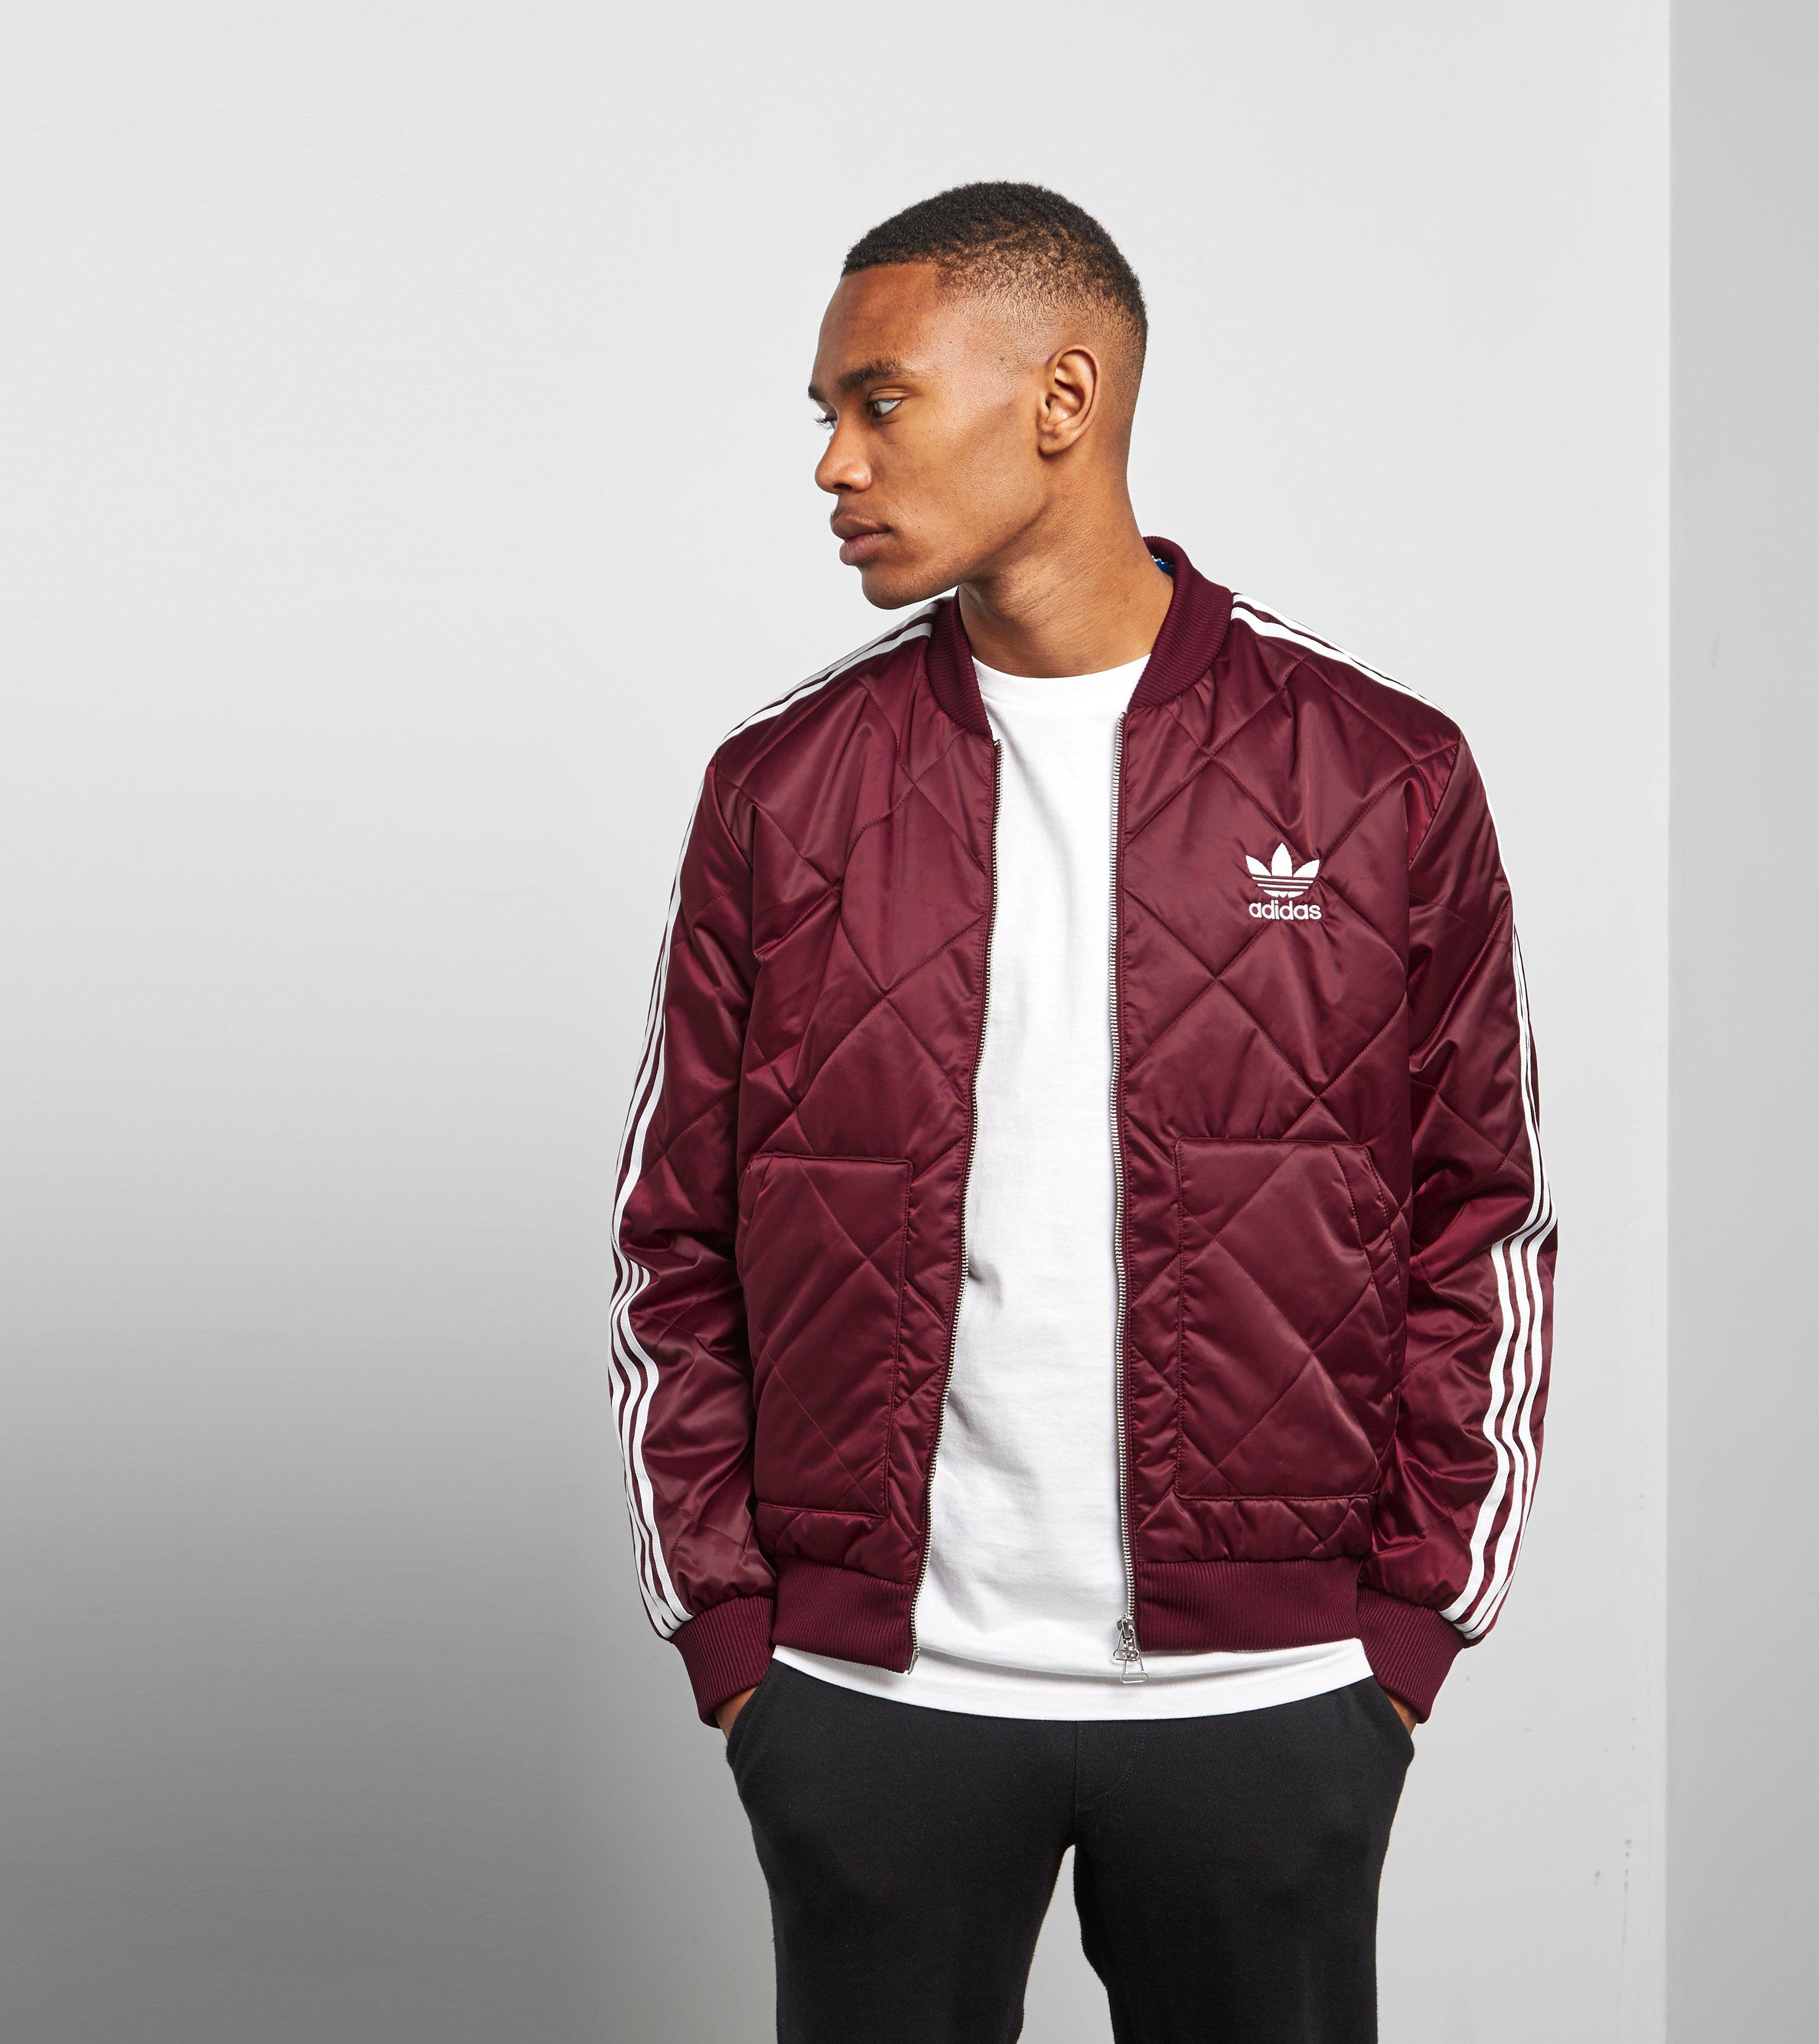 c7c5f74bb6 adidas Originals Sst Quilted Jacket in Red for Men - Lyst